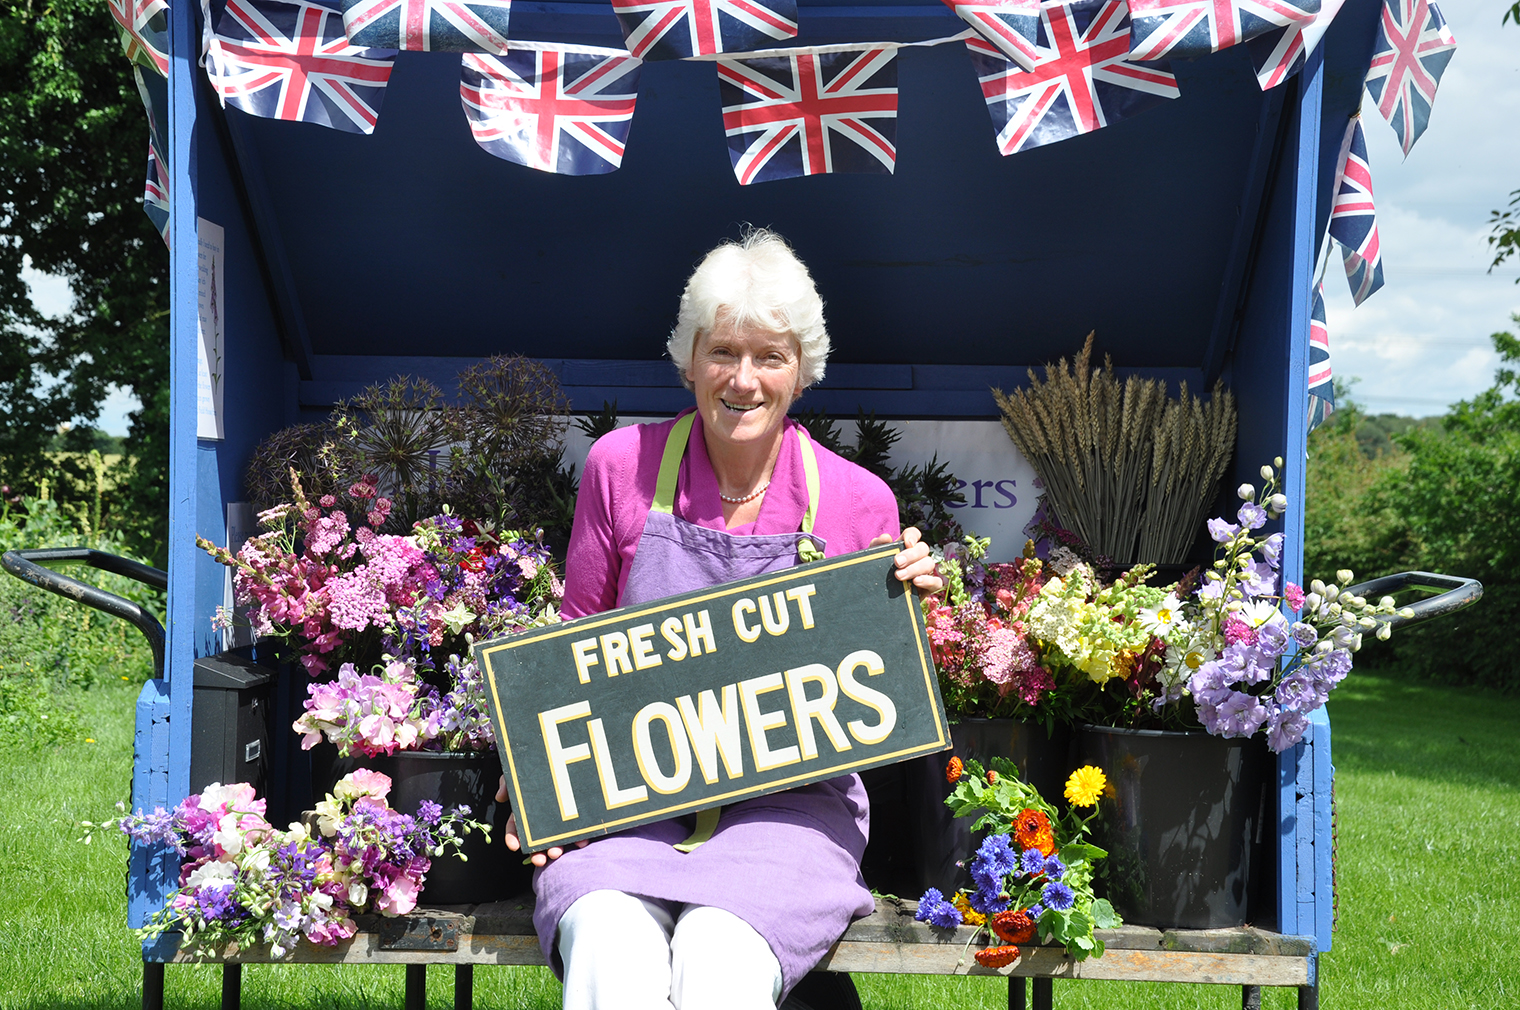 British flower growers - Gill Hodgson from Fieldhouse Flowers